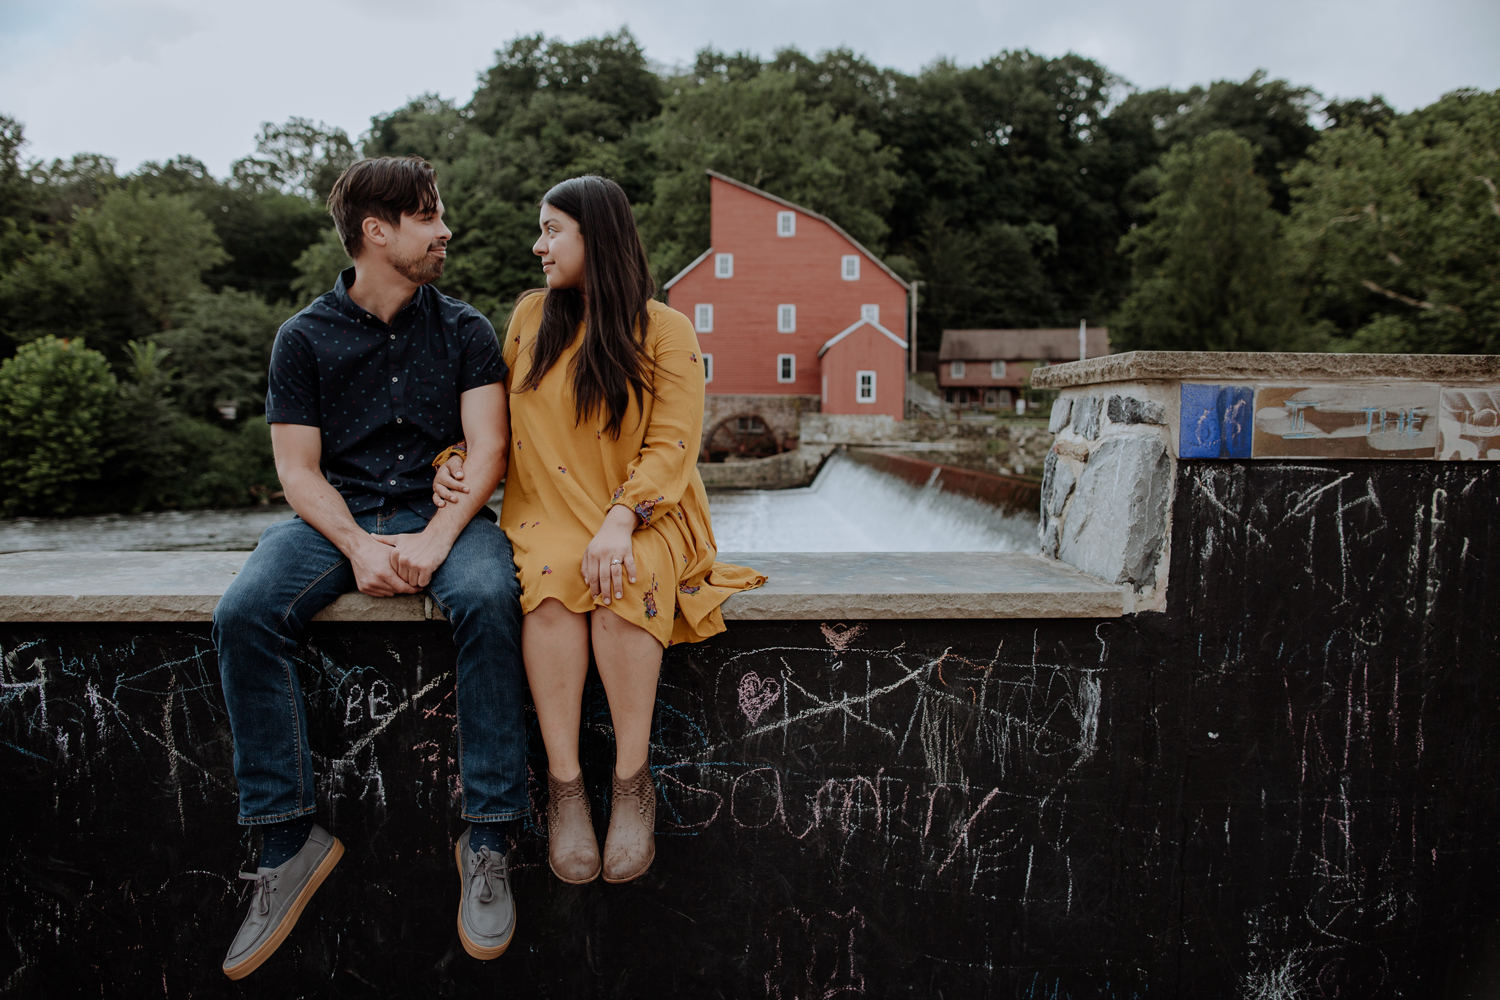 engagement-photography-lehigh-valley-new-jersey-area